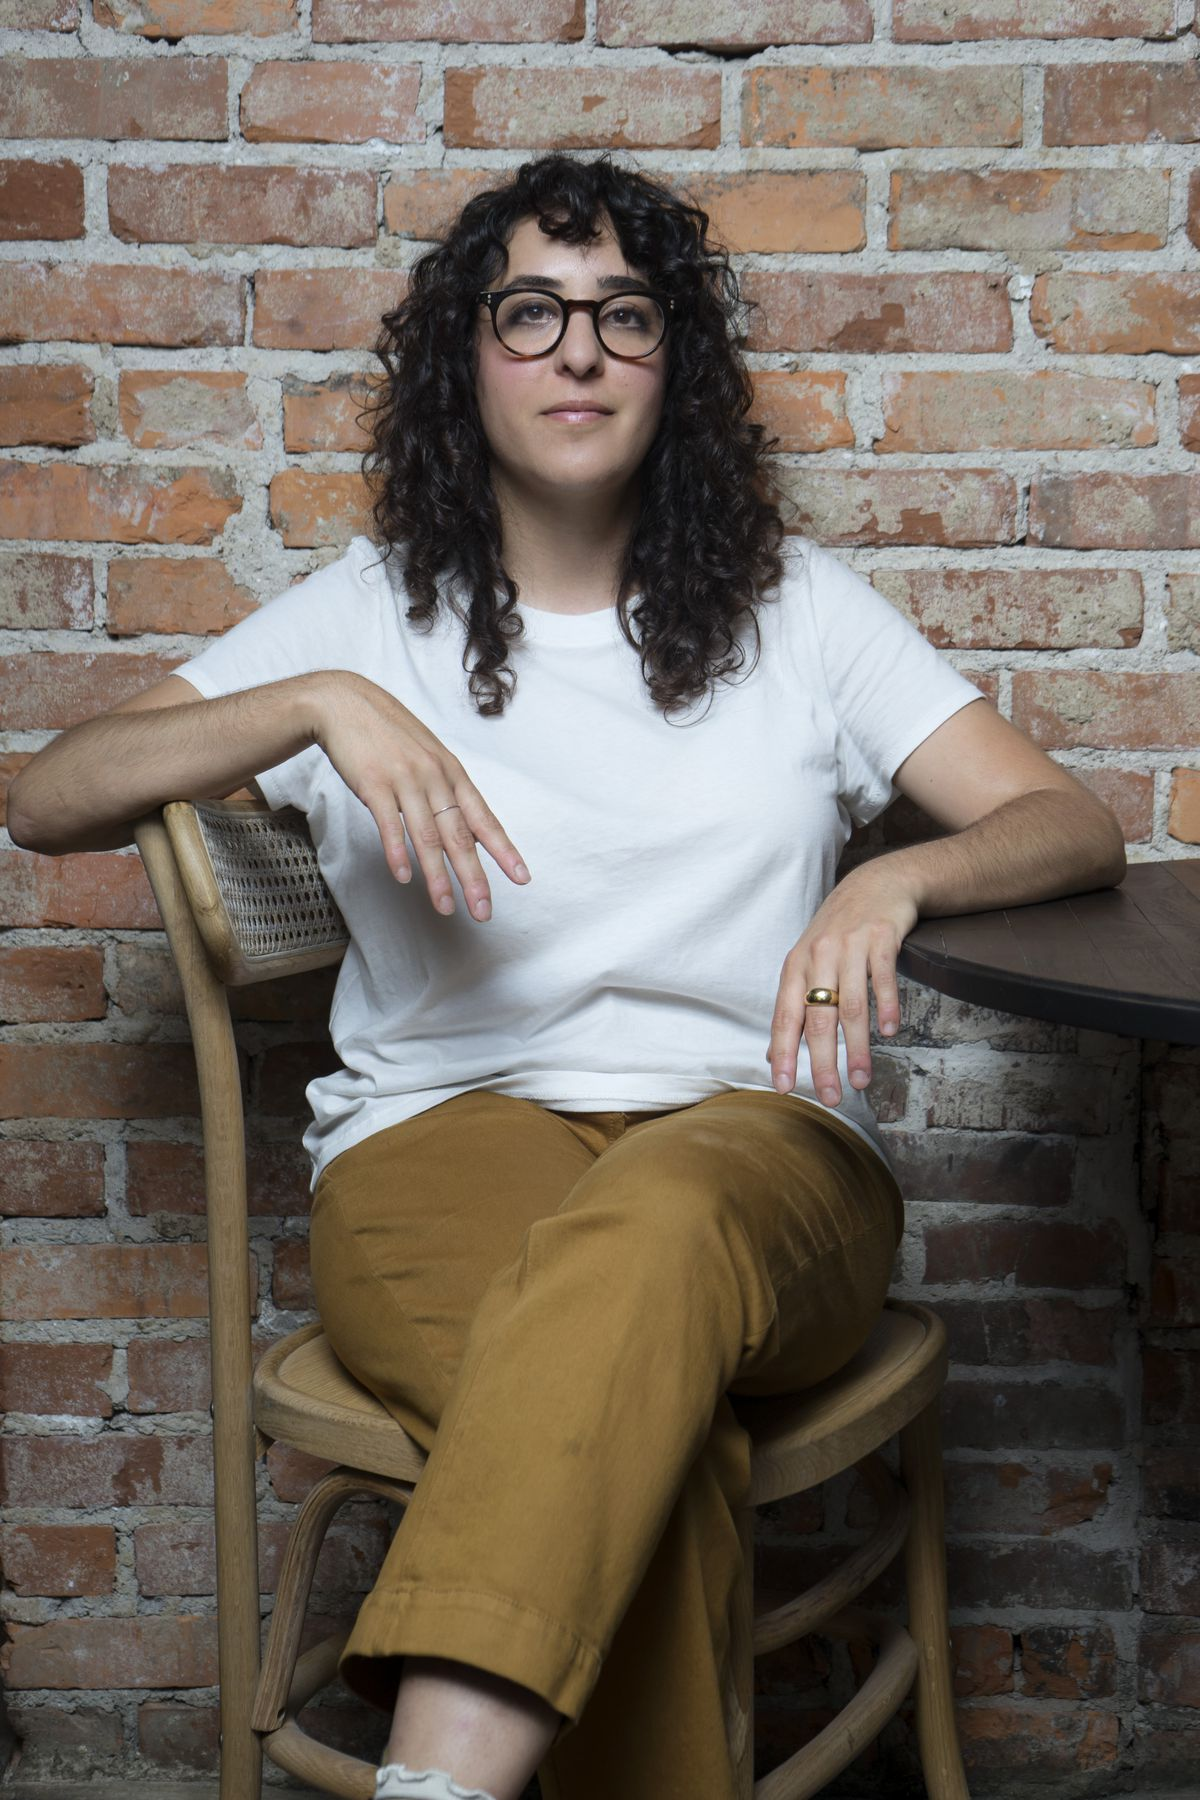 Pastry chef Sarah Piligian sits on a chair with a brick wall background.